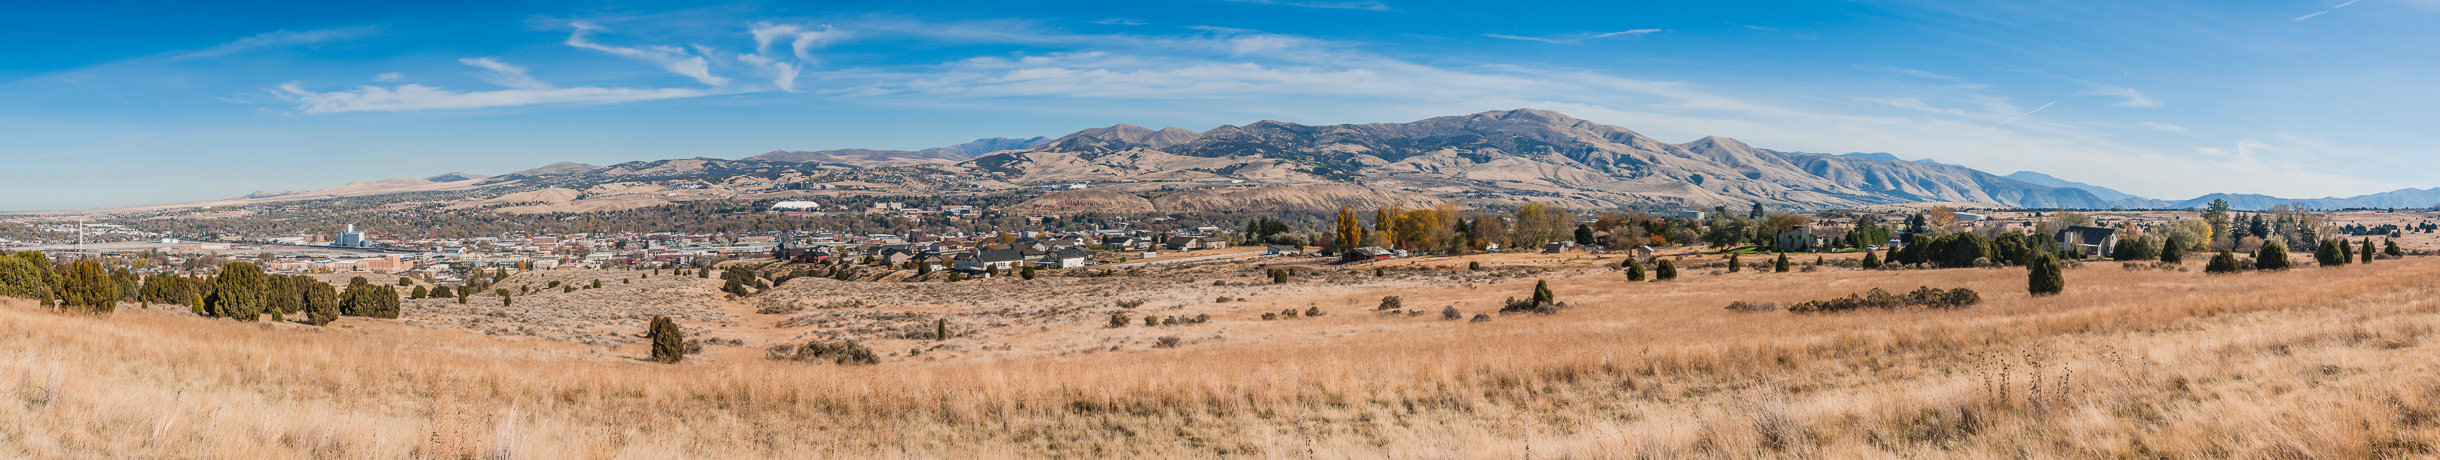 A panoramic view of the city of Pocatello, Idaho, as seen from a nearby hillside.